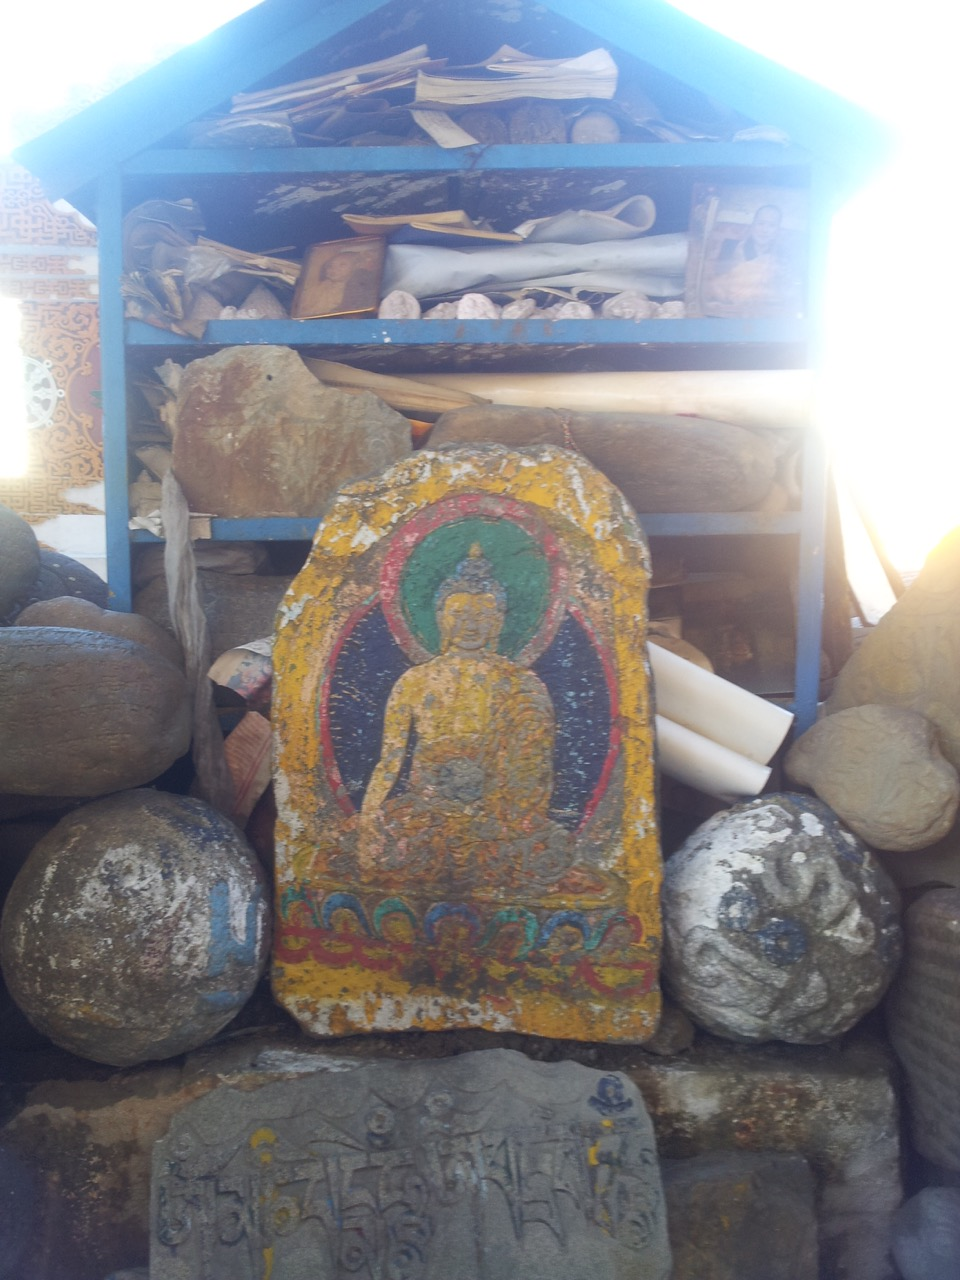 A Buddha idol painted on a stone slab.